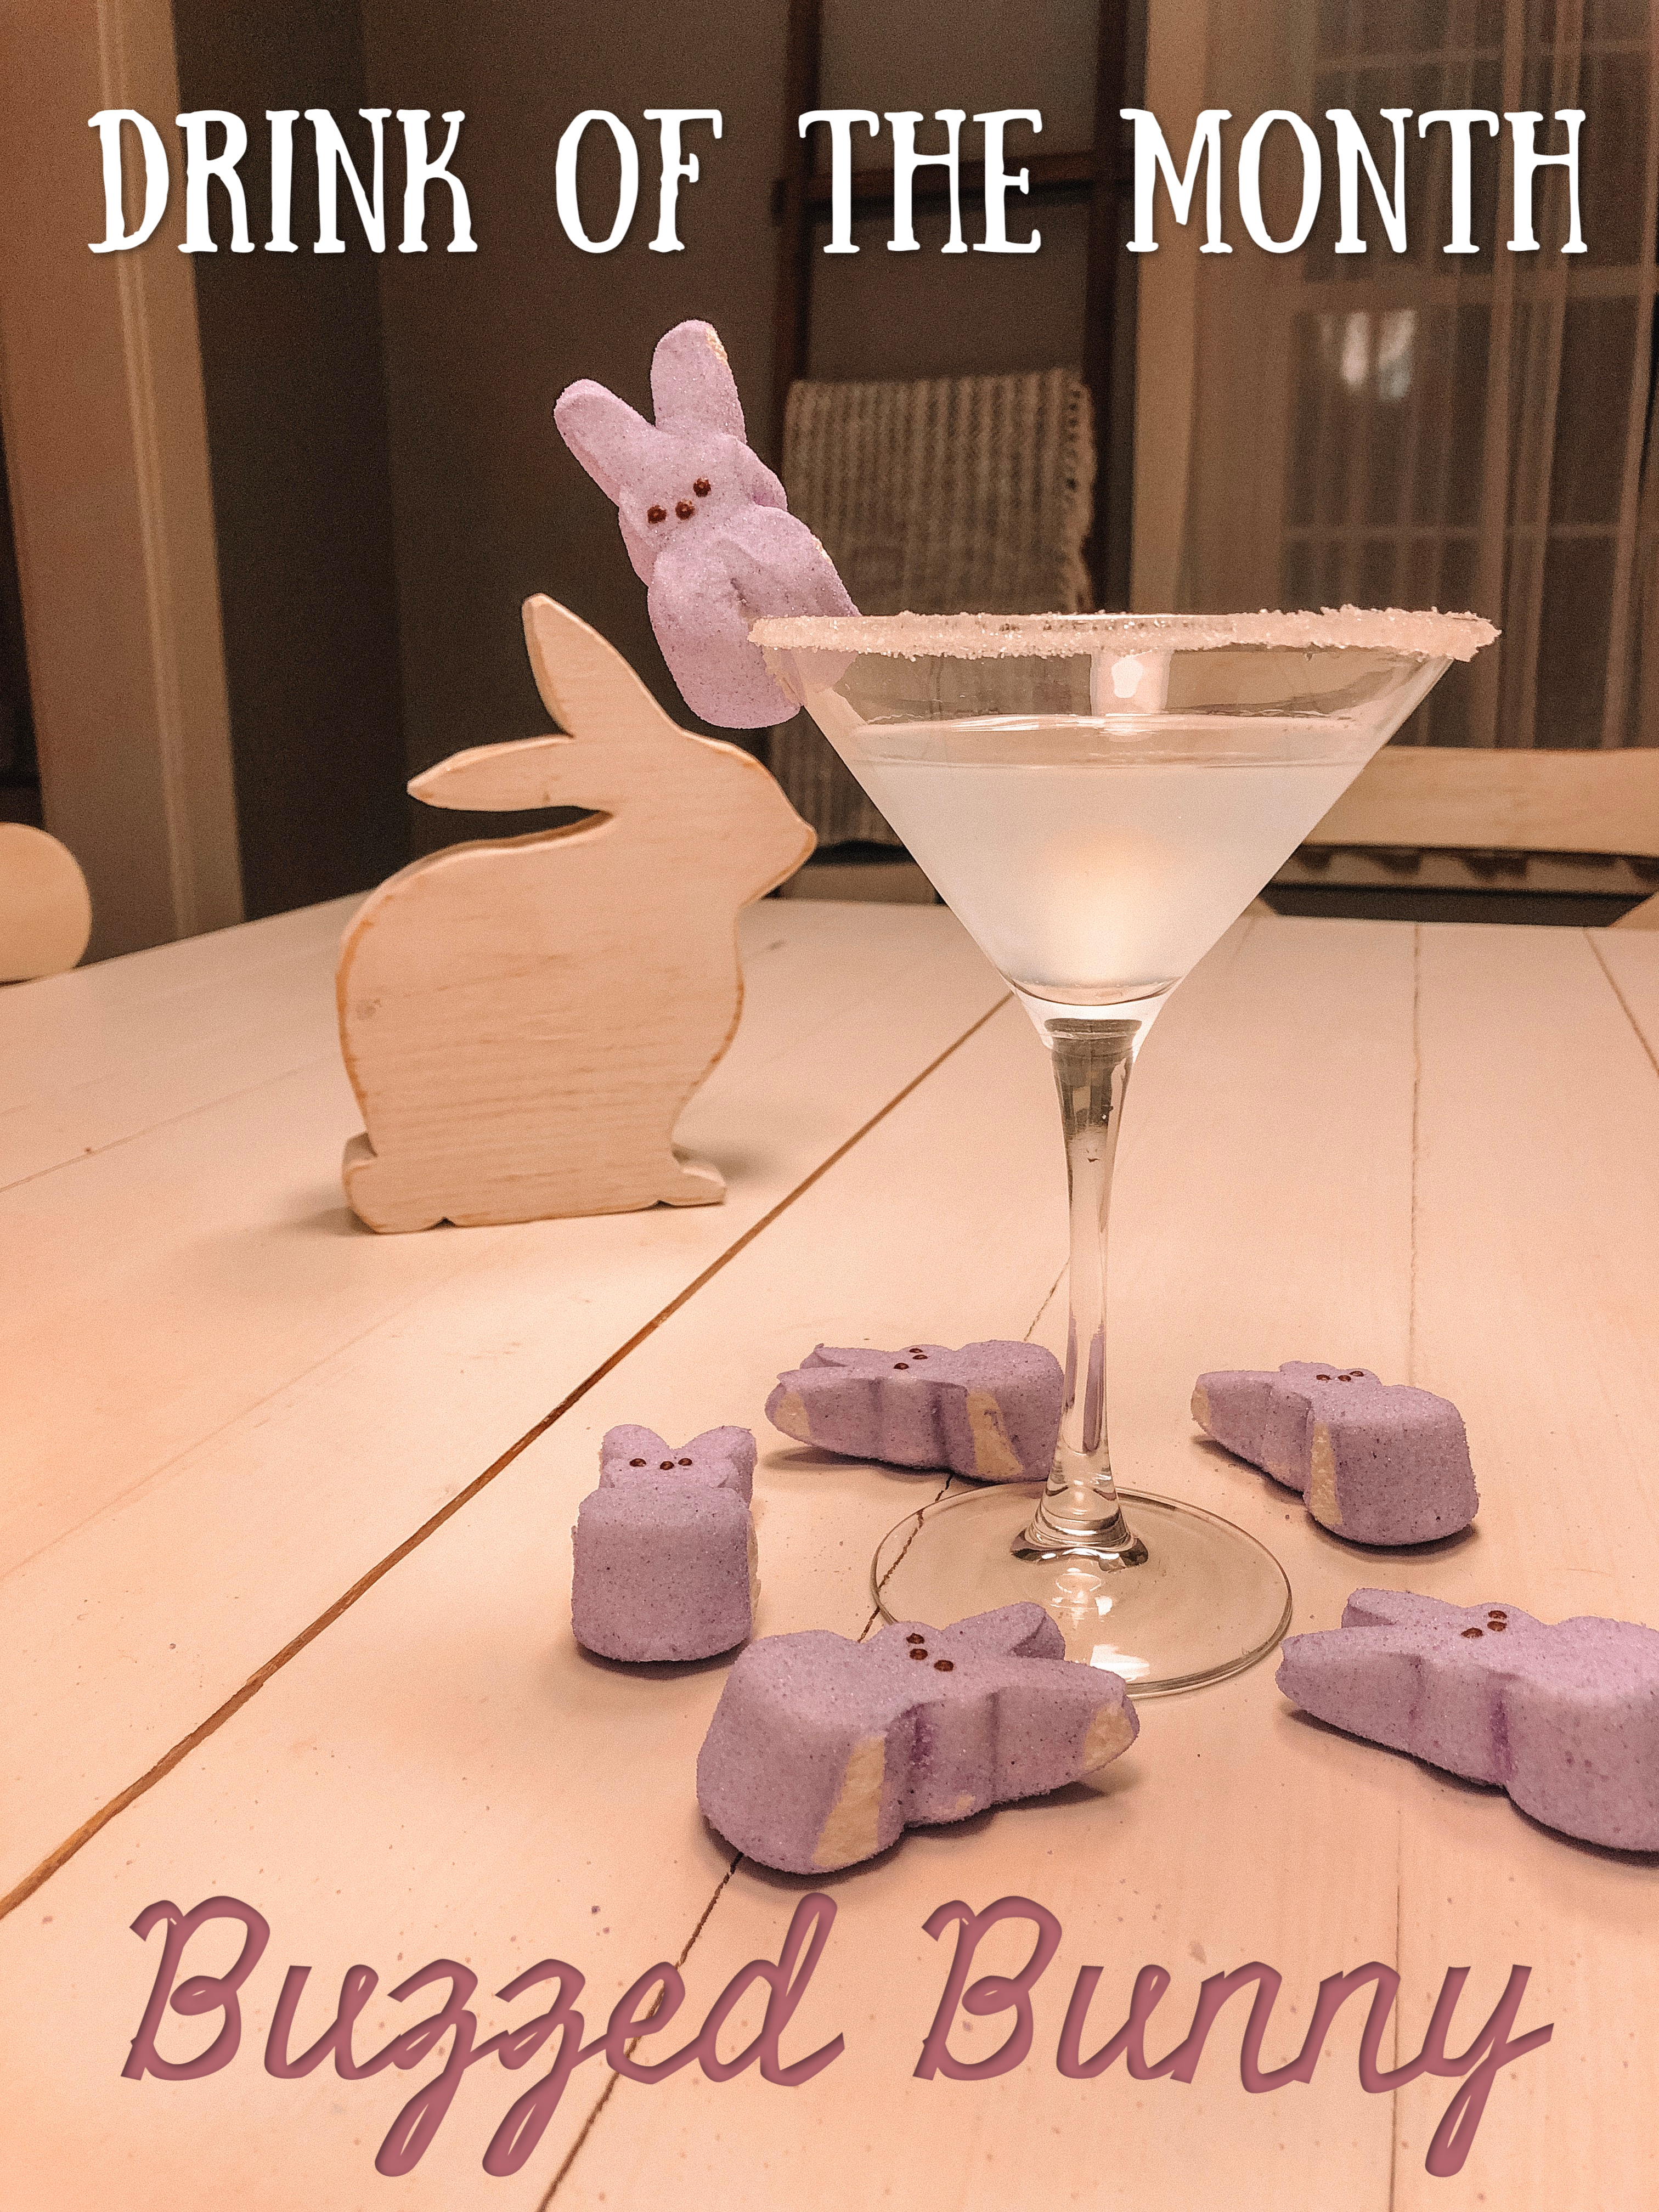 Drink of the Month: Buzzed Bunny